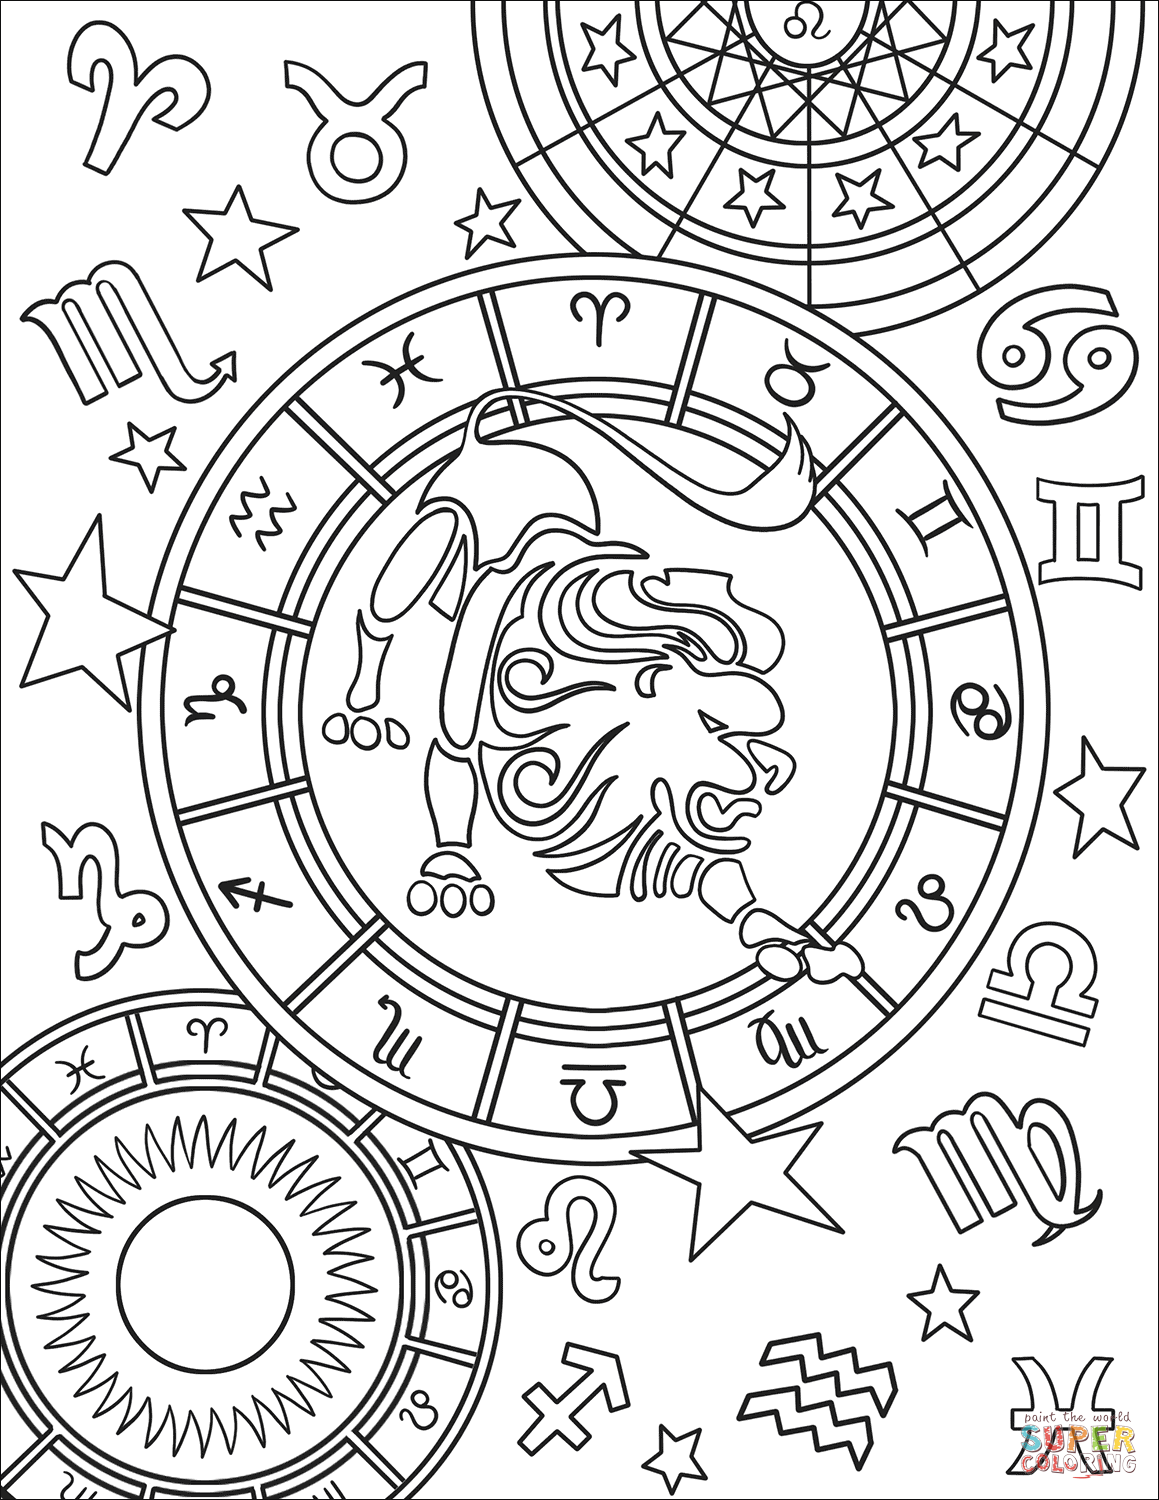 zodiac coloring pages zodiac coloring pages best coloring pages for kids coloring zodiac pages